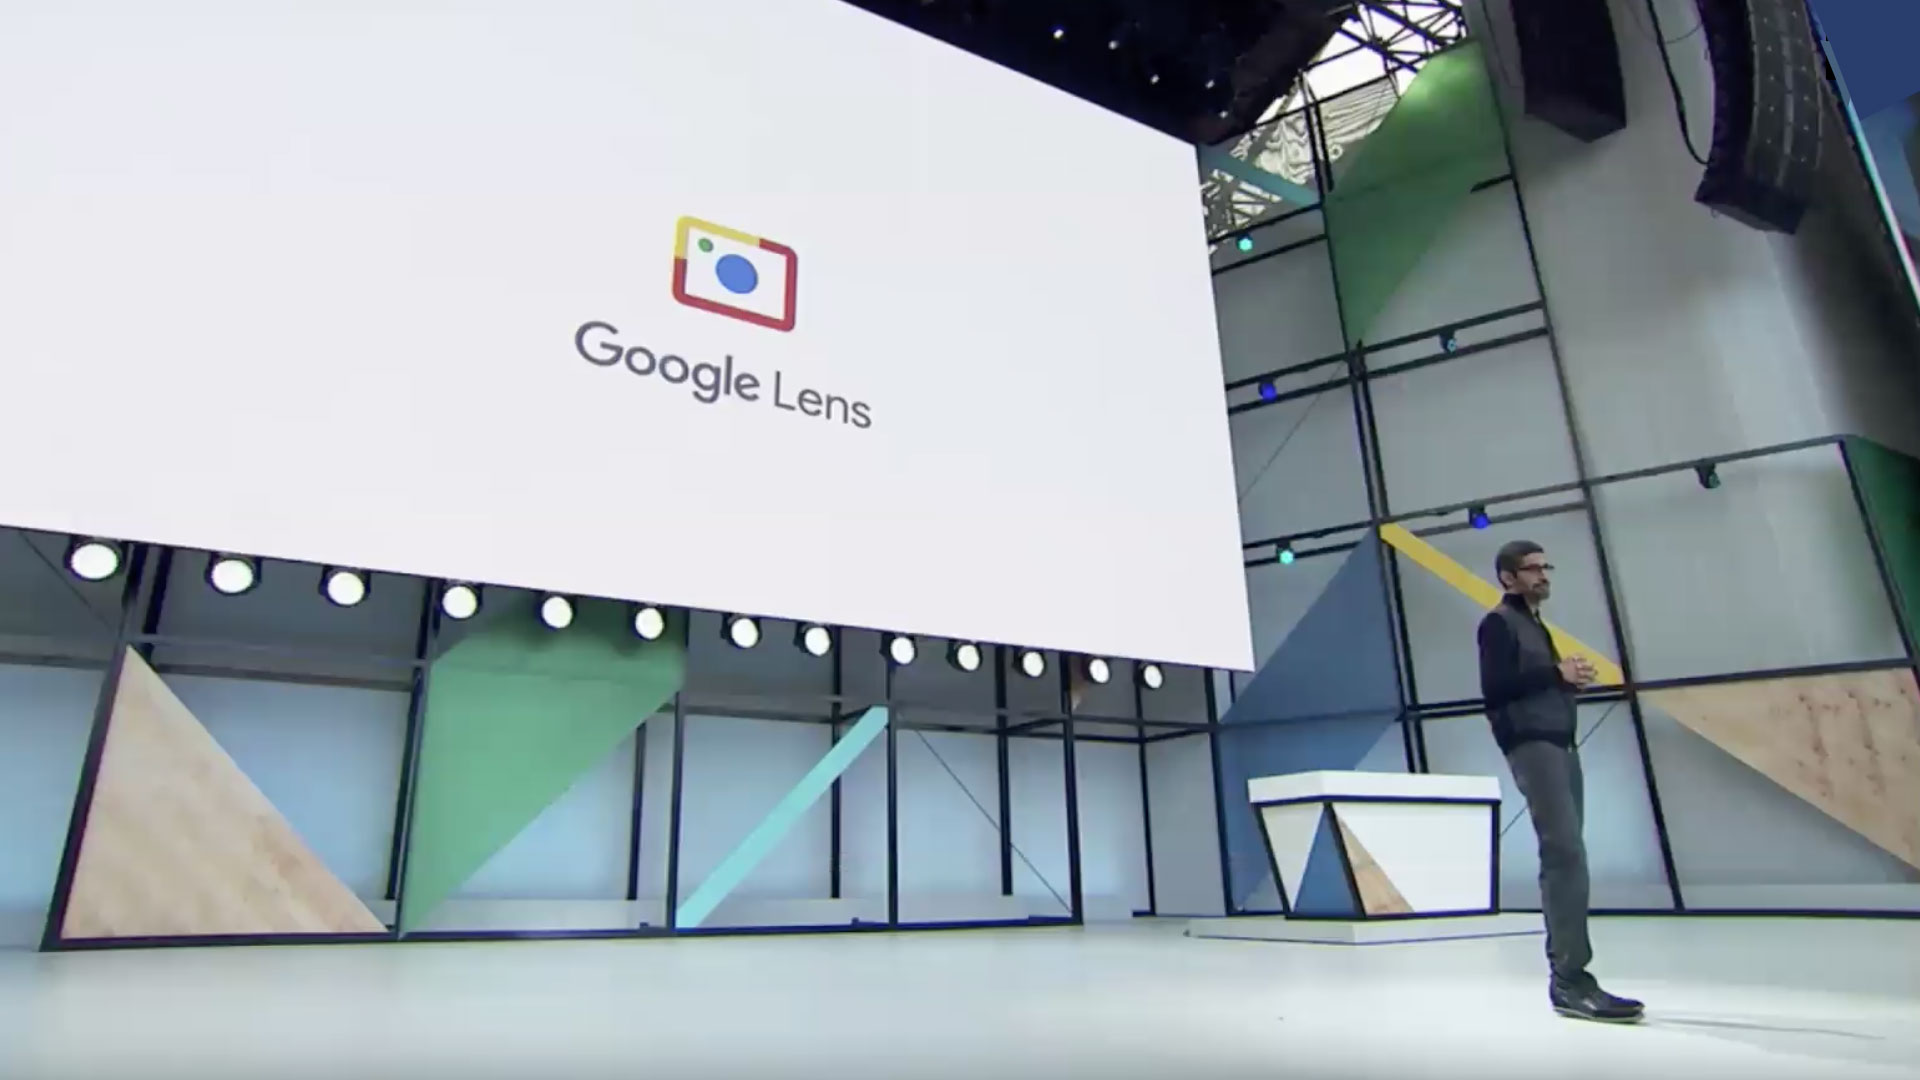 Robert Wong google lens branding with man on stage